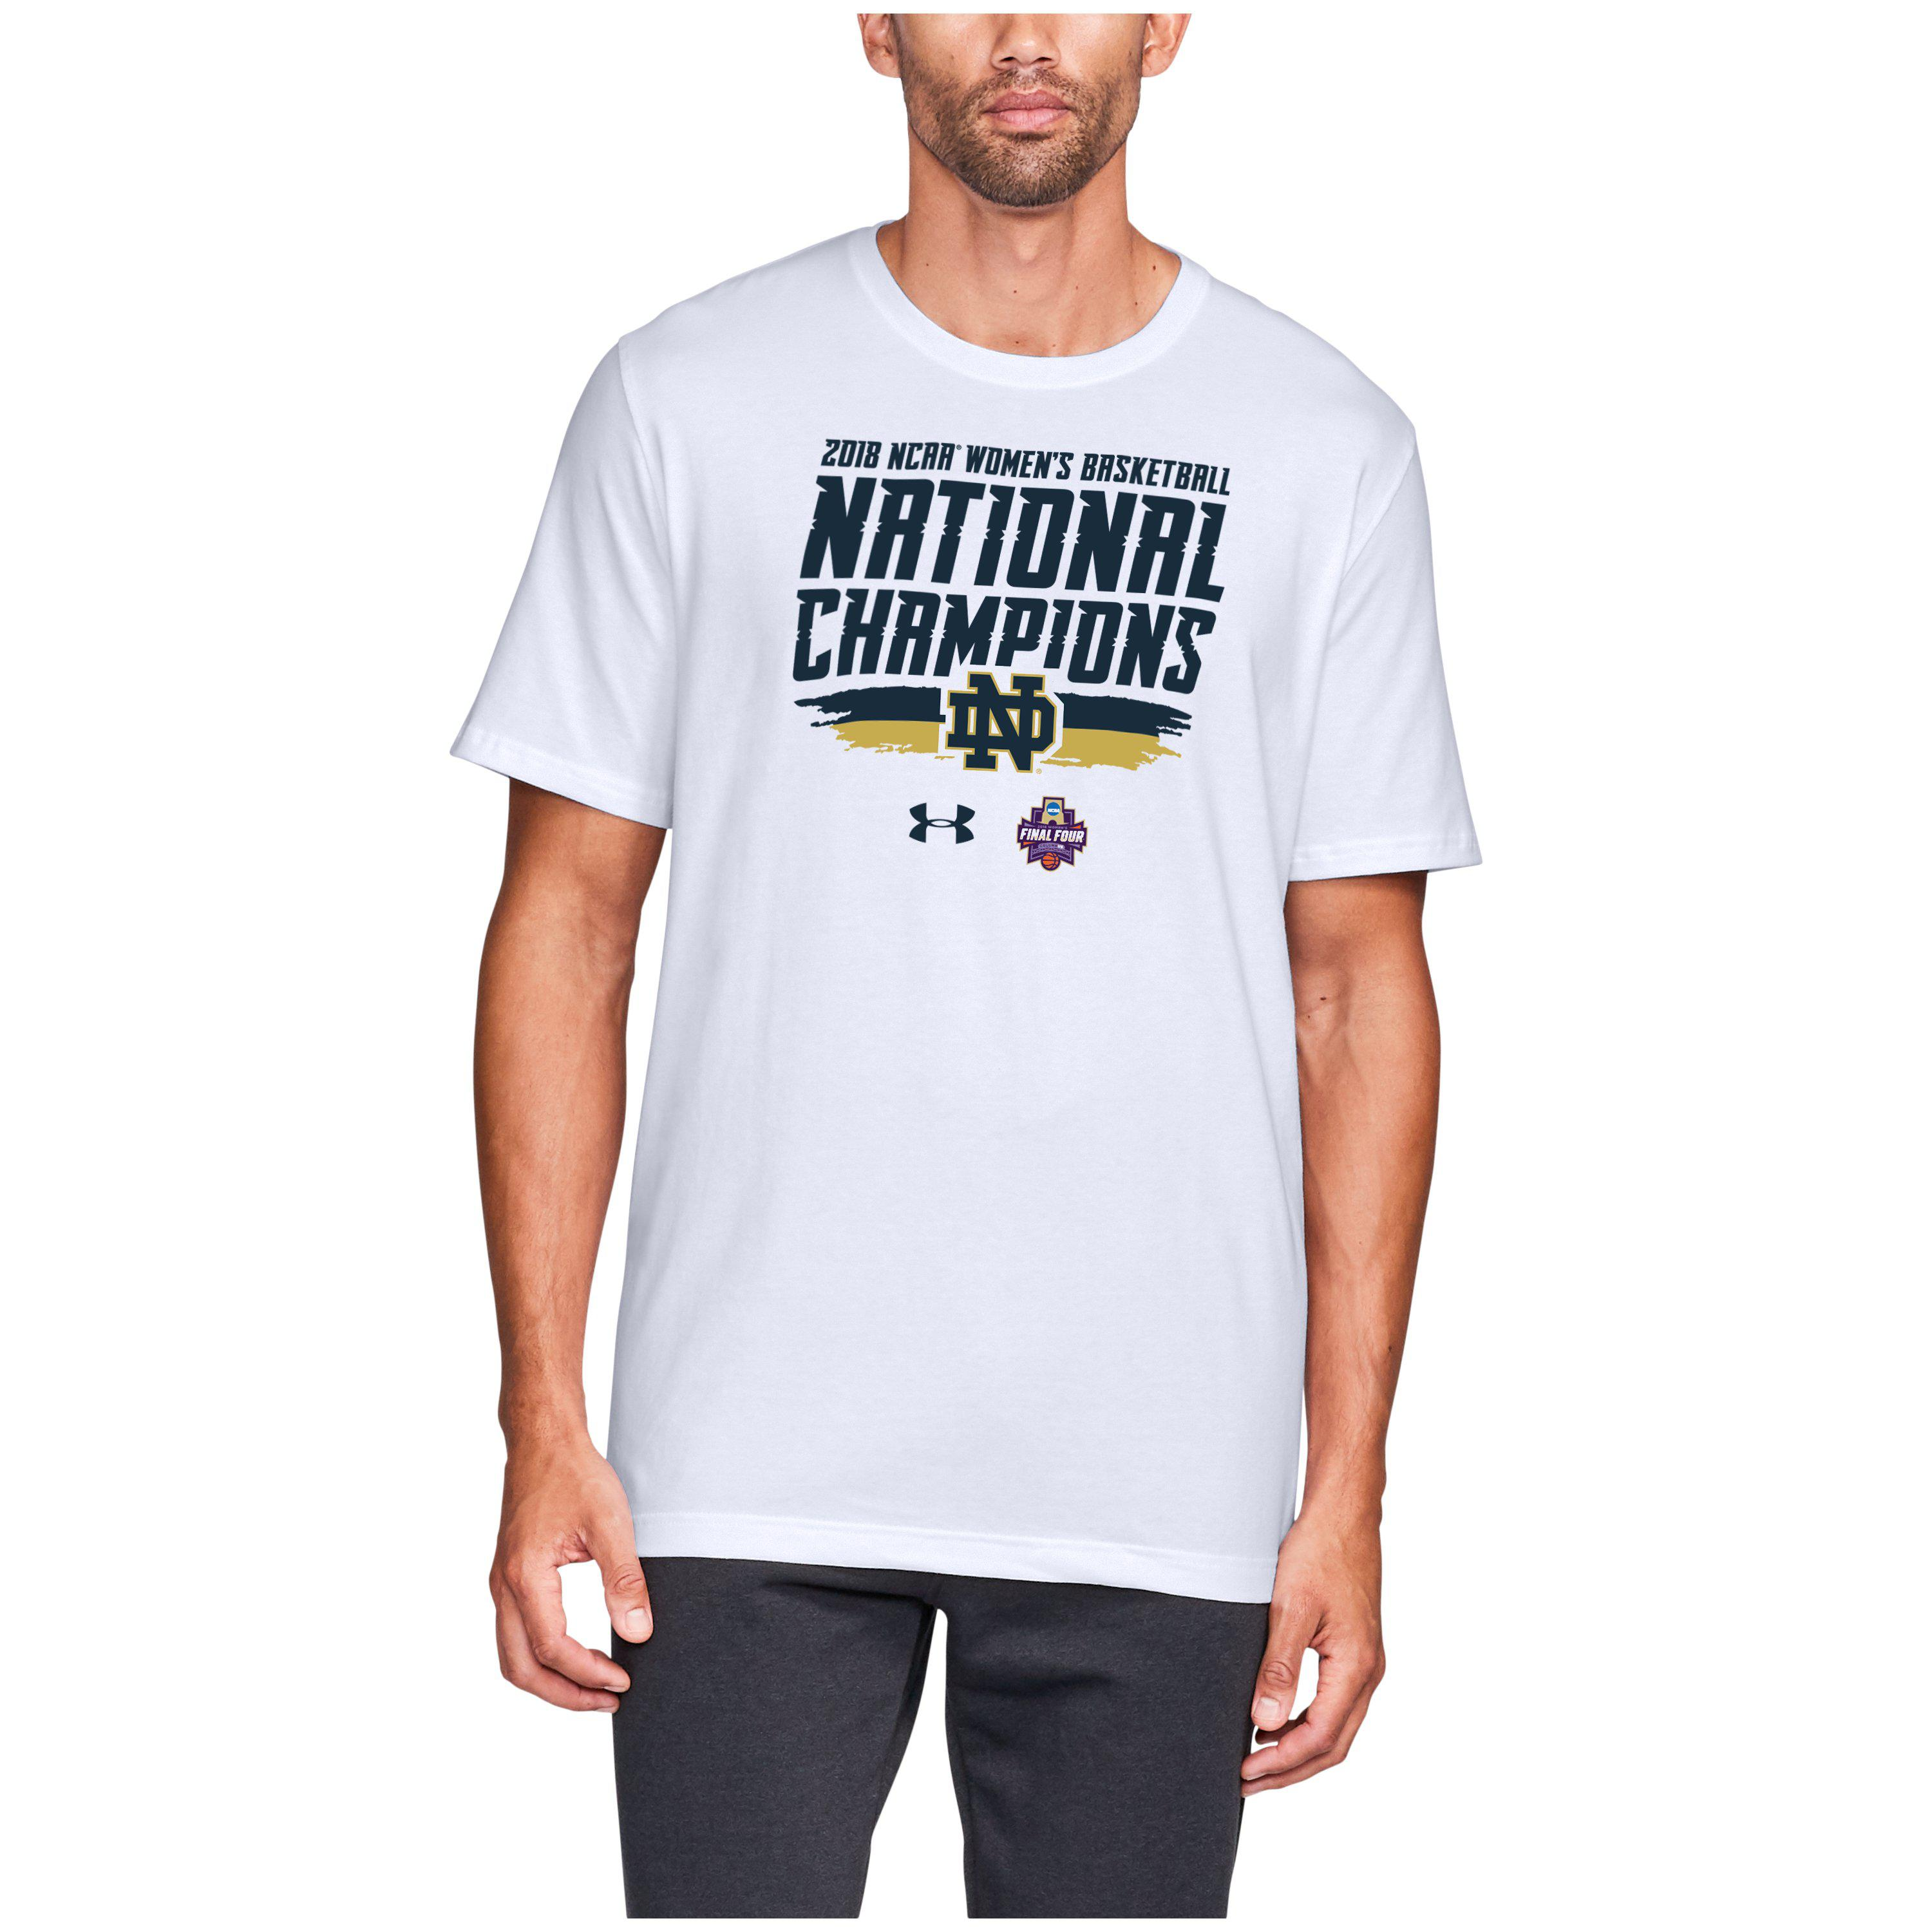 9bb7a4863e65 Notre Dame Womens Basketball T Shirts – EDGE Engineering and ...